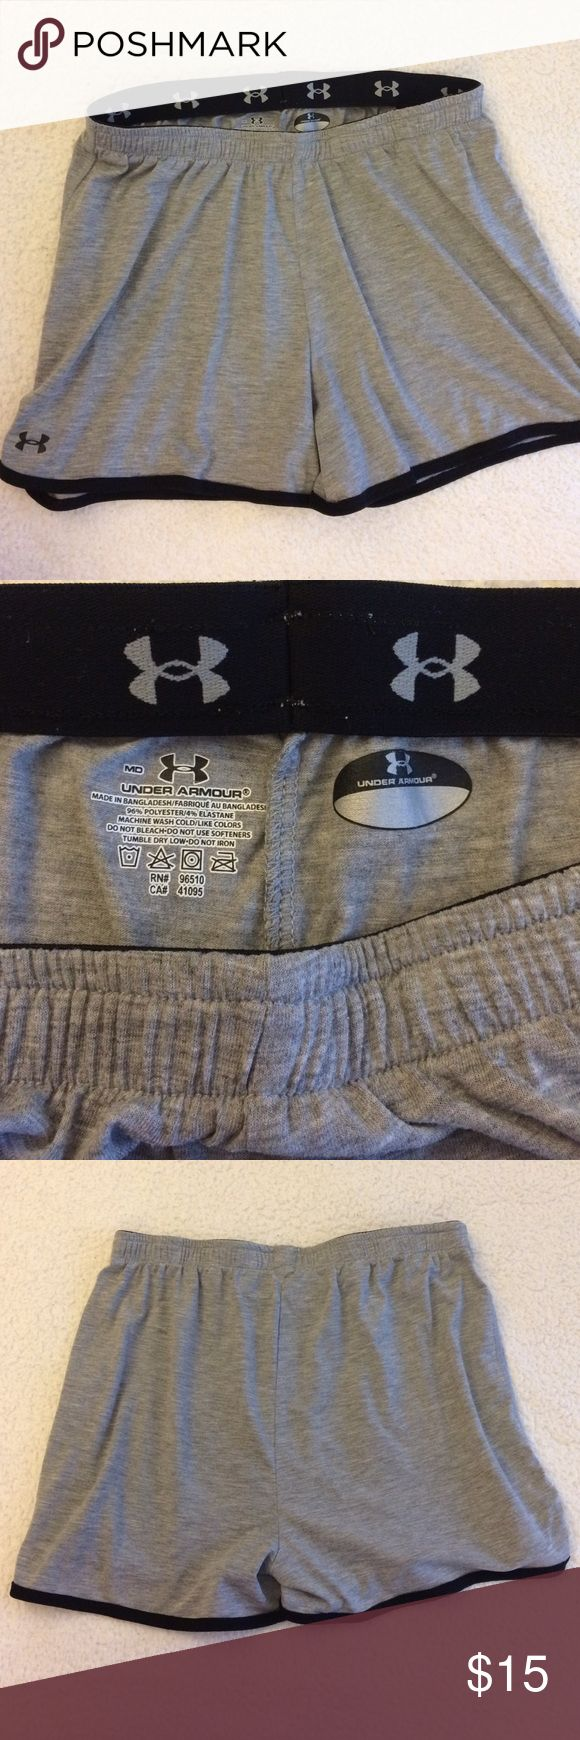 Under Armour Gray Shorts Classic heather gray running shorts. Soft polyester/elastane blend. Elastic waist is ~ 14 in. across front, and stretches far. Length is ~ 12.5 front, ~ 14 back. EUC, no significant signs of wear. **Bundle with black Under Armour shorts for discount! Under Armour Shorts